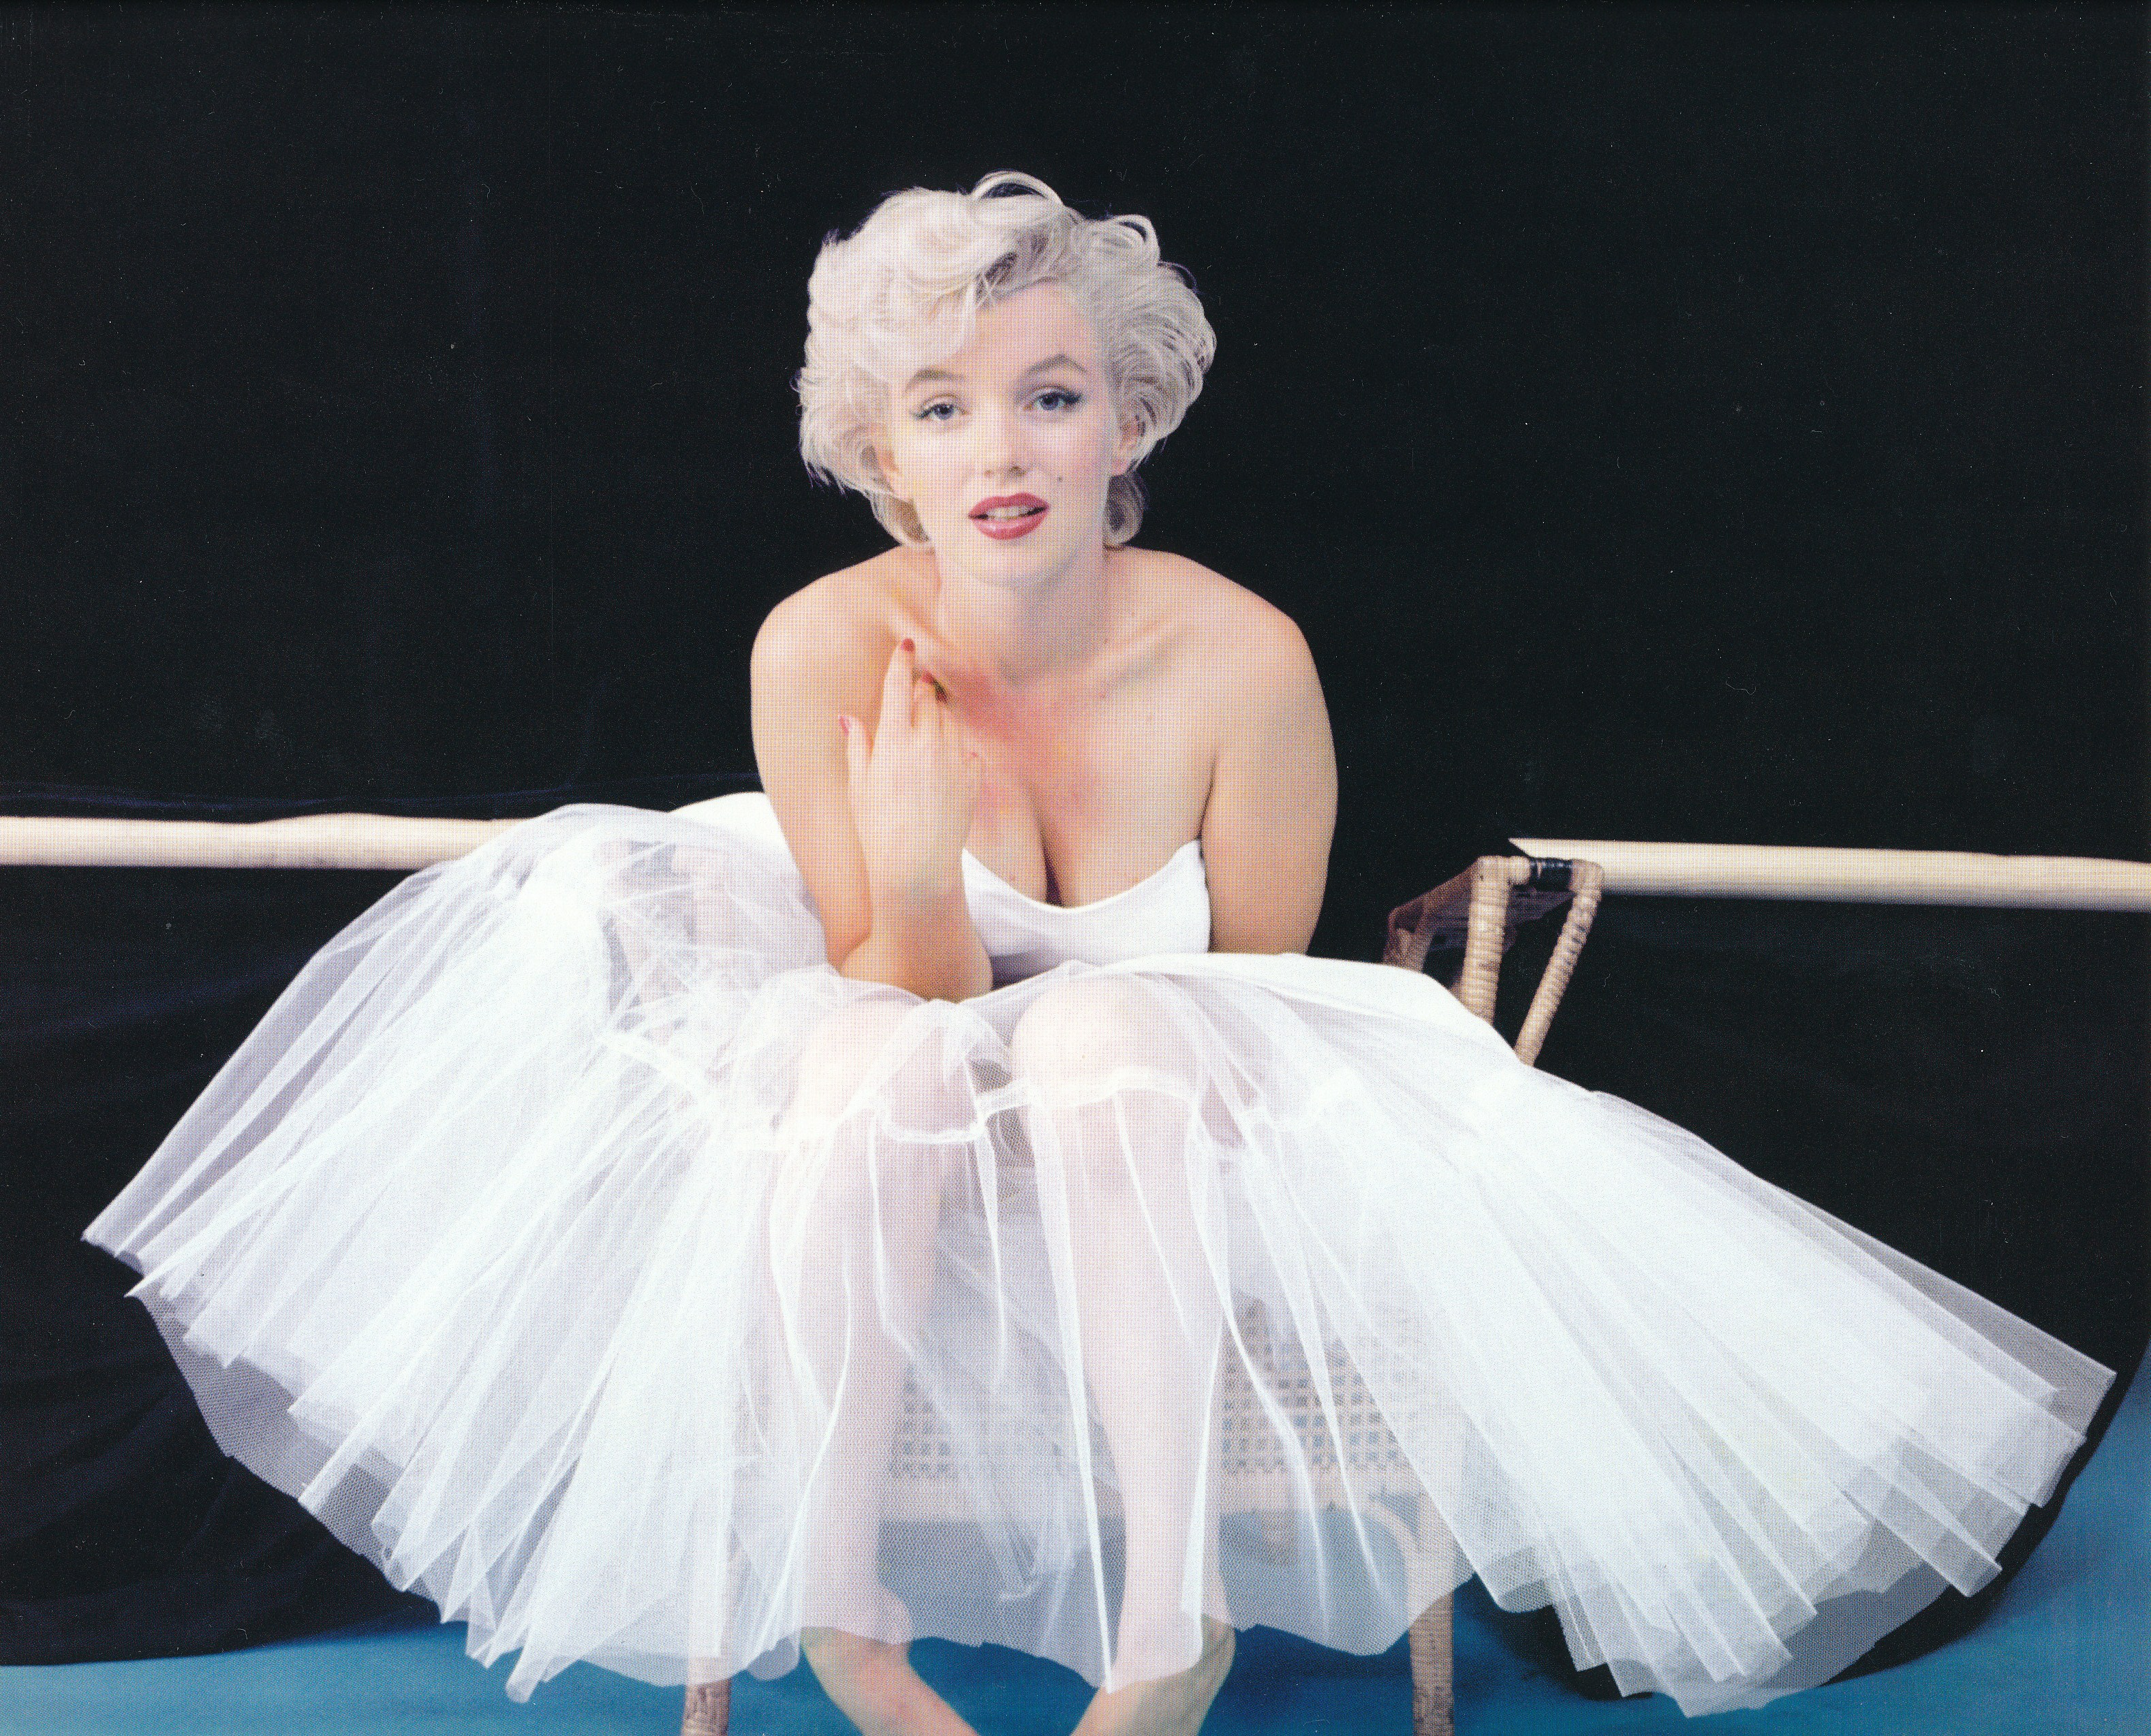 marilyn monroe actress blonde r wallpaper | 3157x2548 | 145028